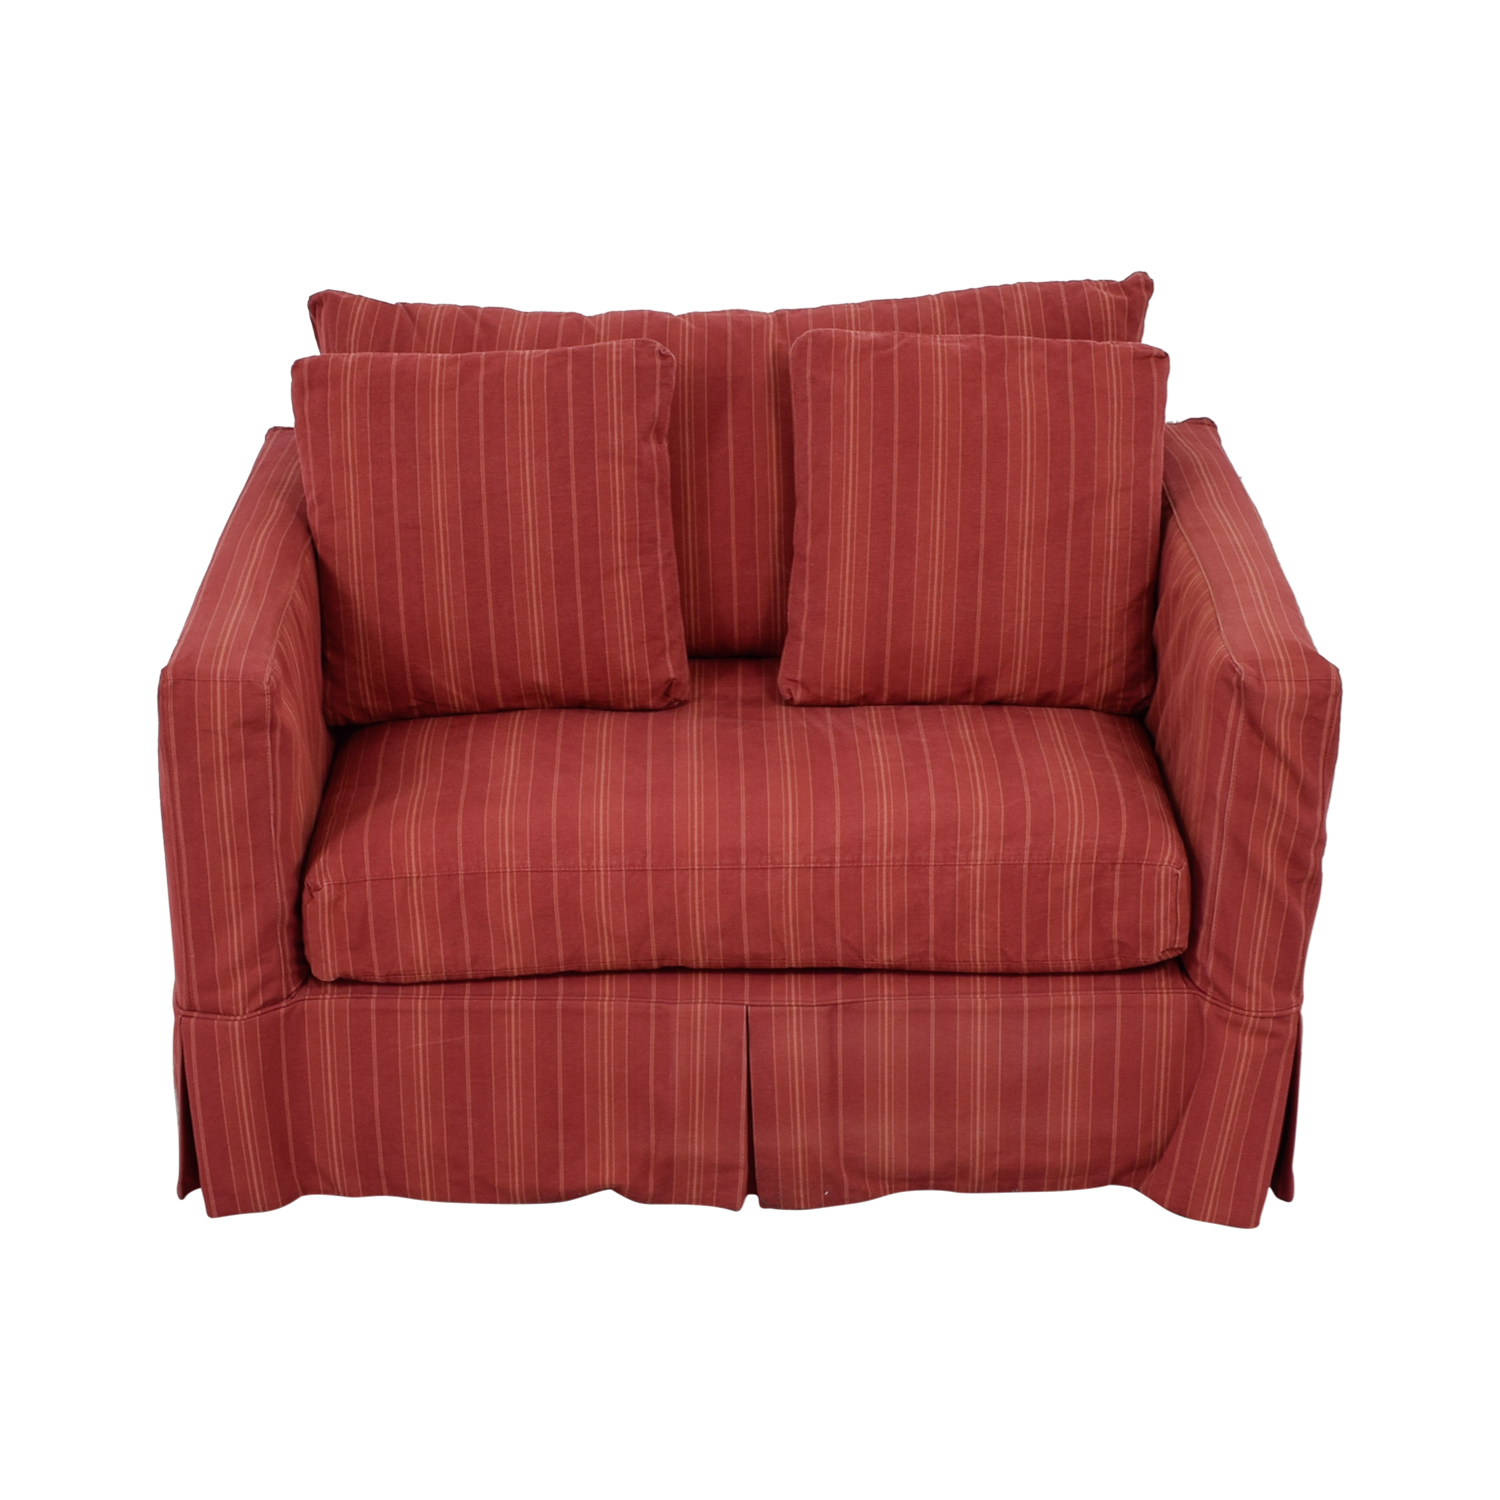 Crate & Barrel Crate & Barrel Willow Red Accent Chair nyc